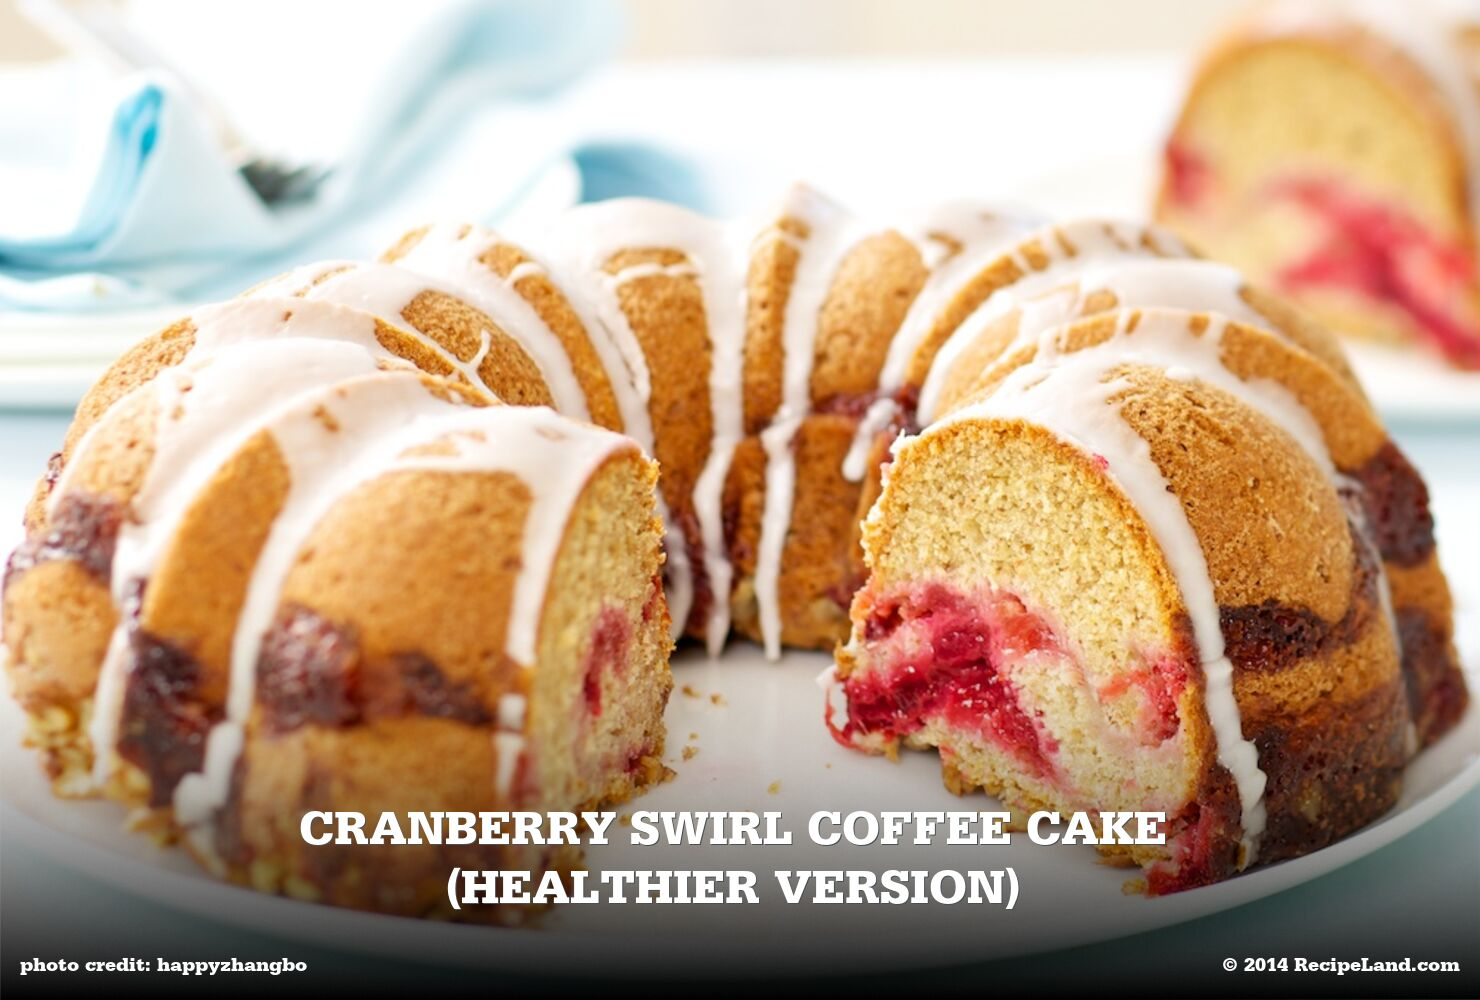 Cranberry Swirl Coffee Cake (Healthier Version)